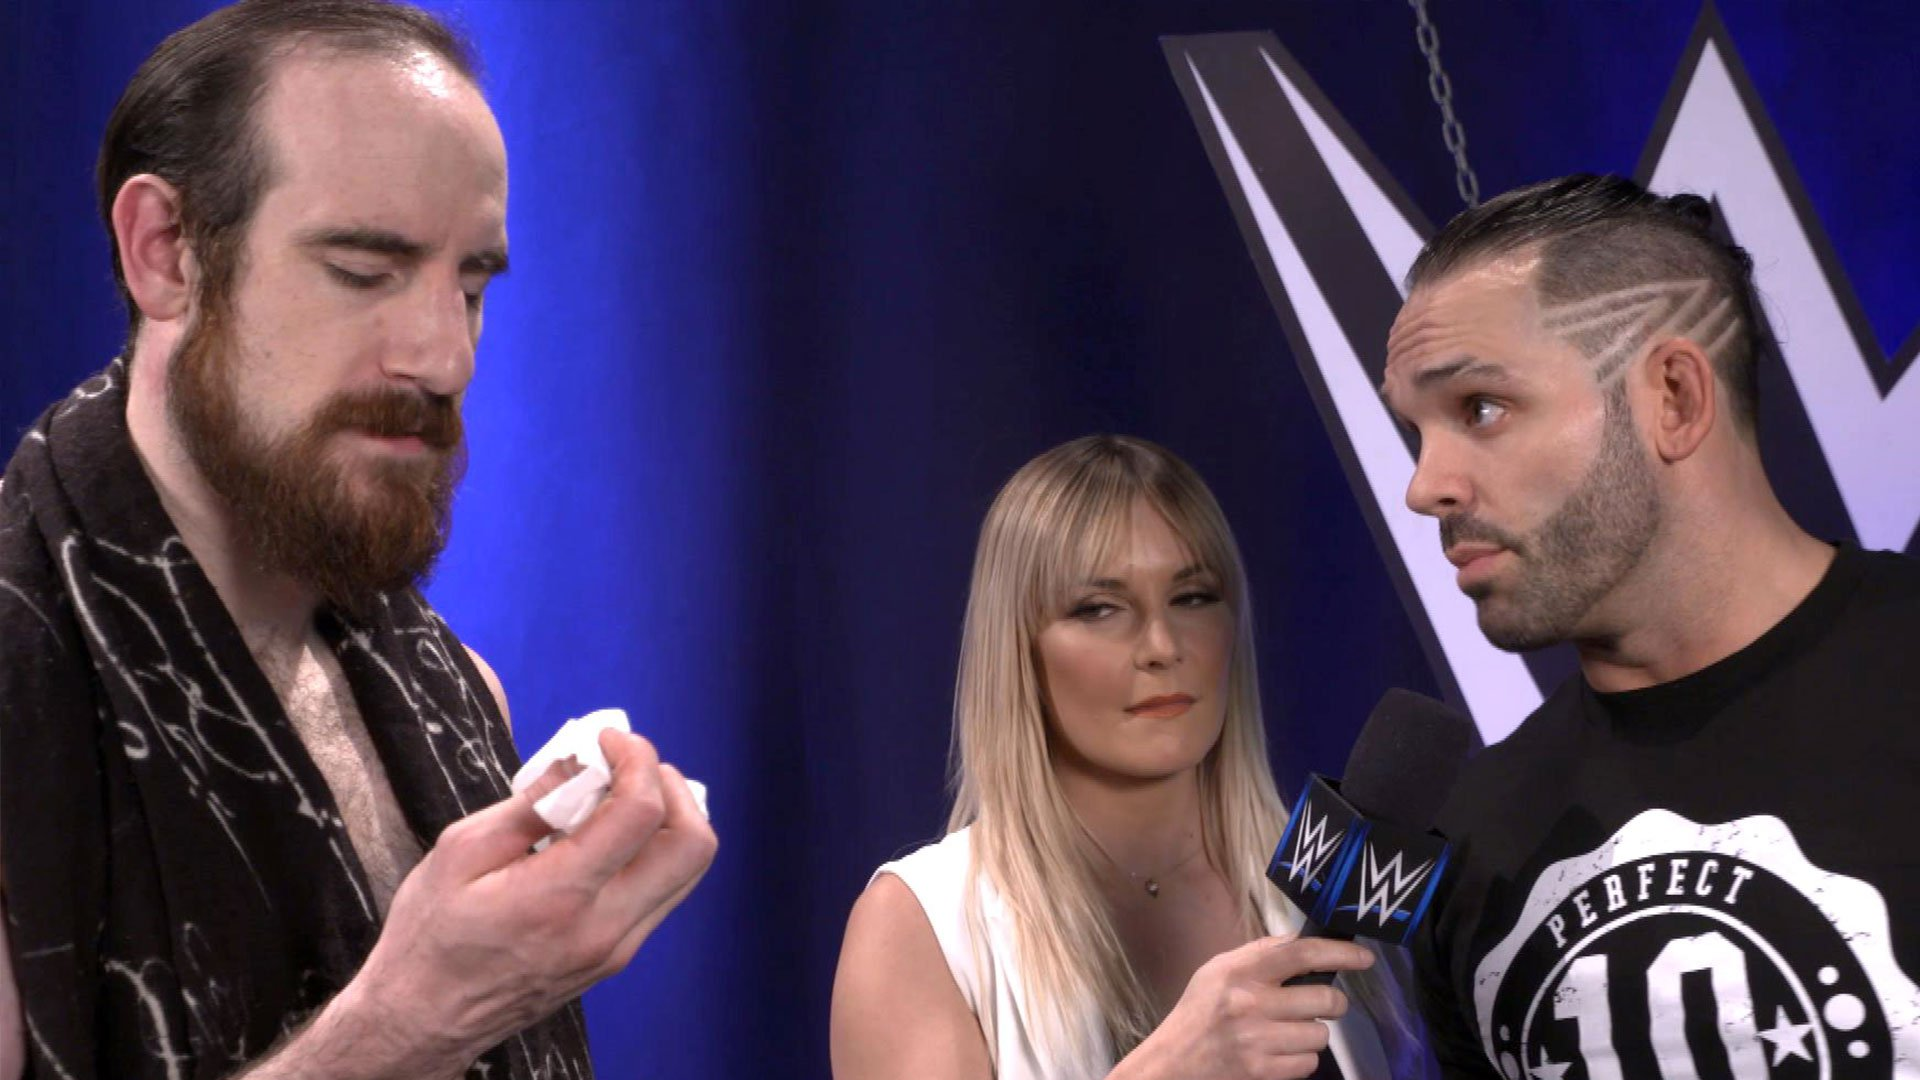 Aiden English staje przed Tye Dillingerem na Backlash Kickoff: WWE.com Exclusive 16.05.17